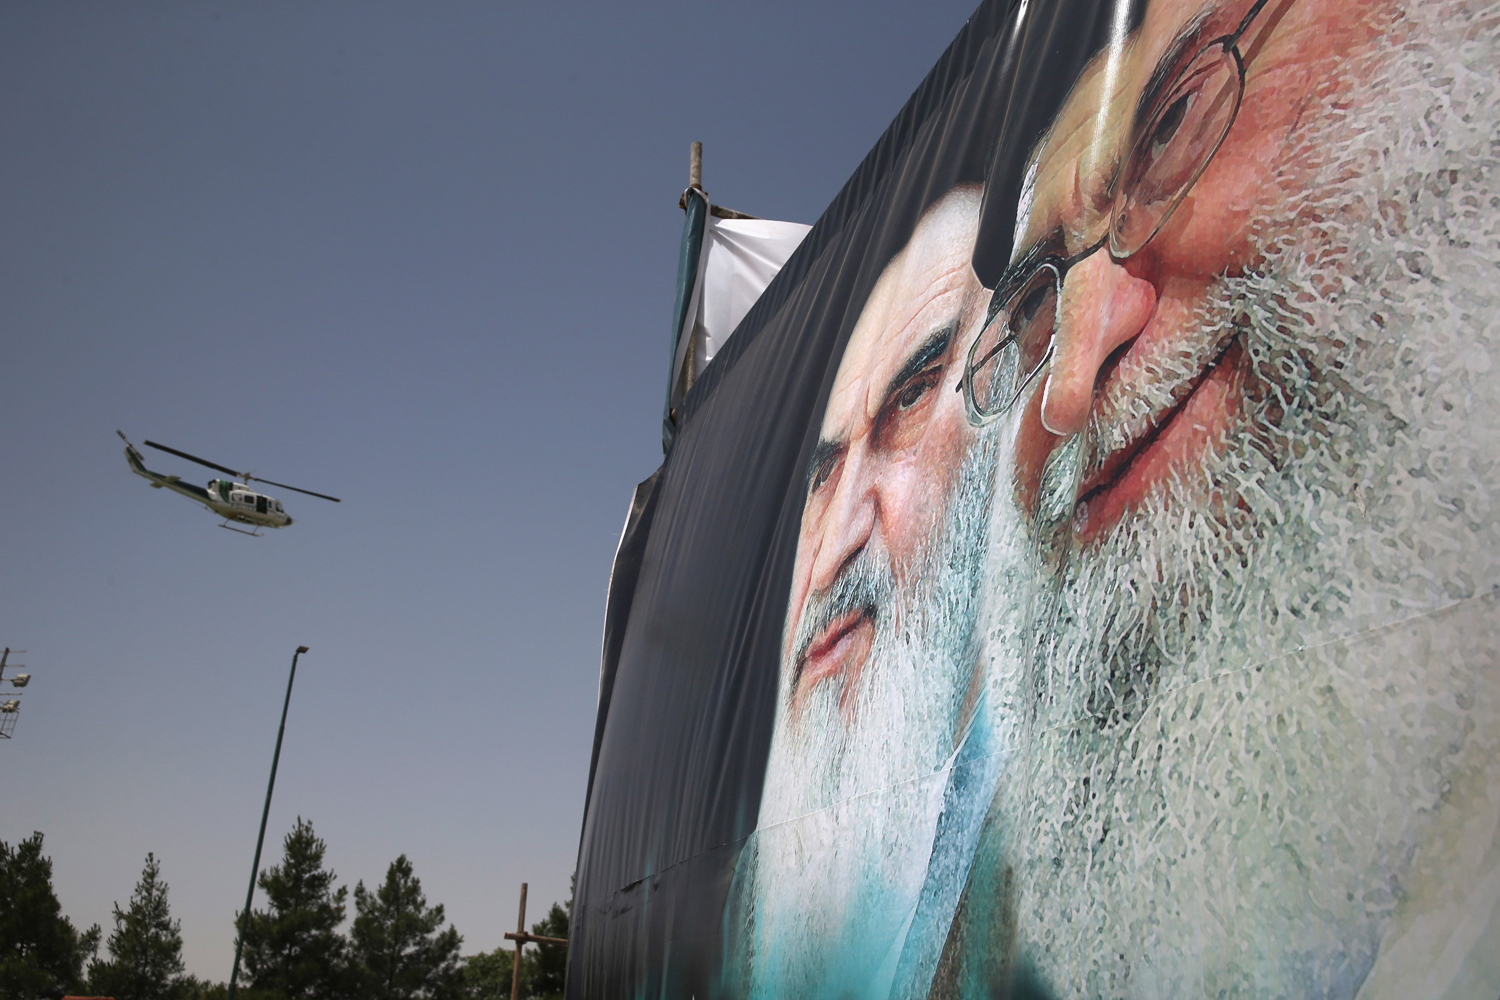 June 4, 2014.  An Iranian police helicopter passes above portraits of Iran's supreme leader Ayatollah Ali Khamenei (R) and the former Ayatollah Khomeini outside Khomeini's shrine on the 25th anniversary of his death on on the outskirts of Tehran, Iran.